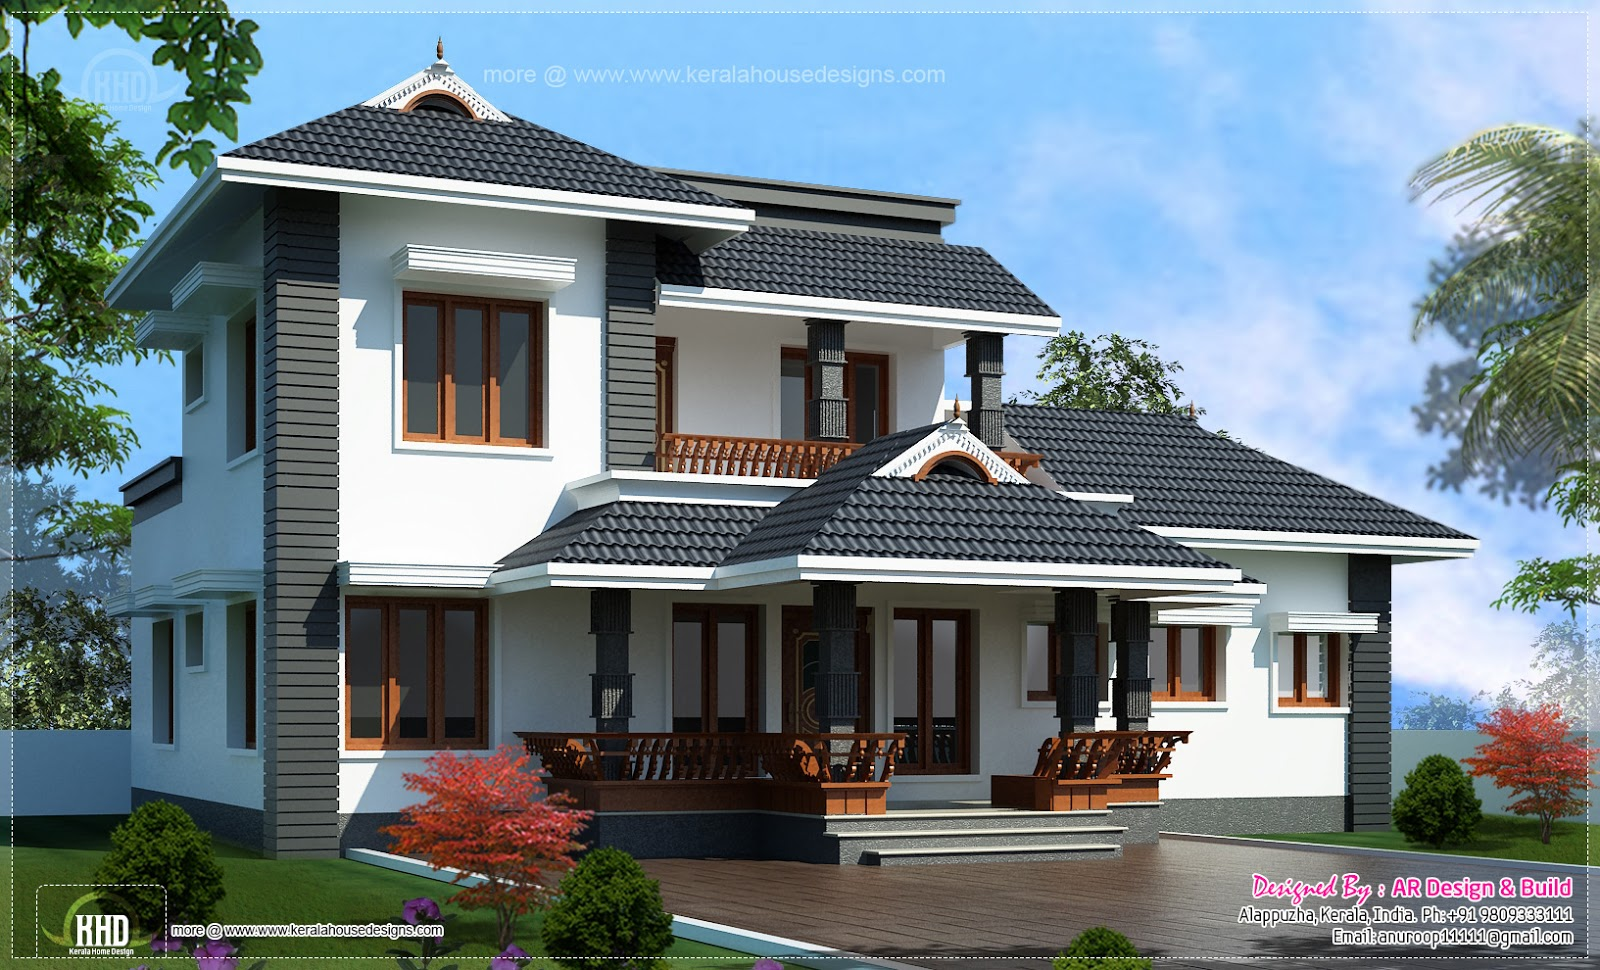 2000 4 Bedroom Sloping Roof Residence Kerala Home Design And Floor Plans